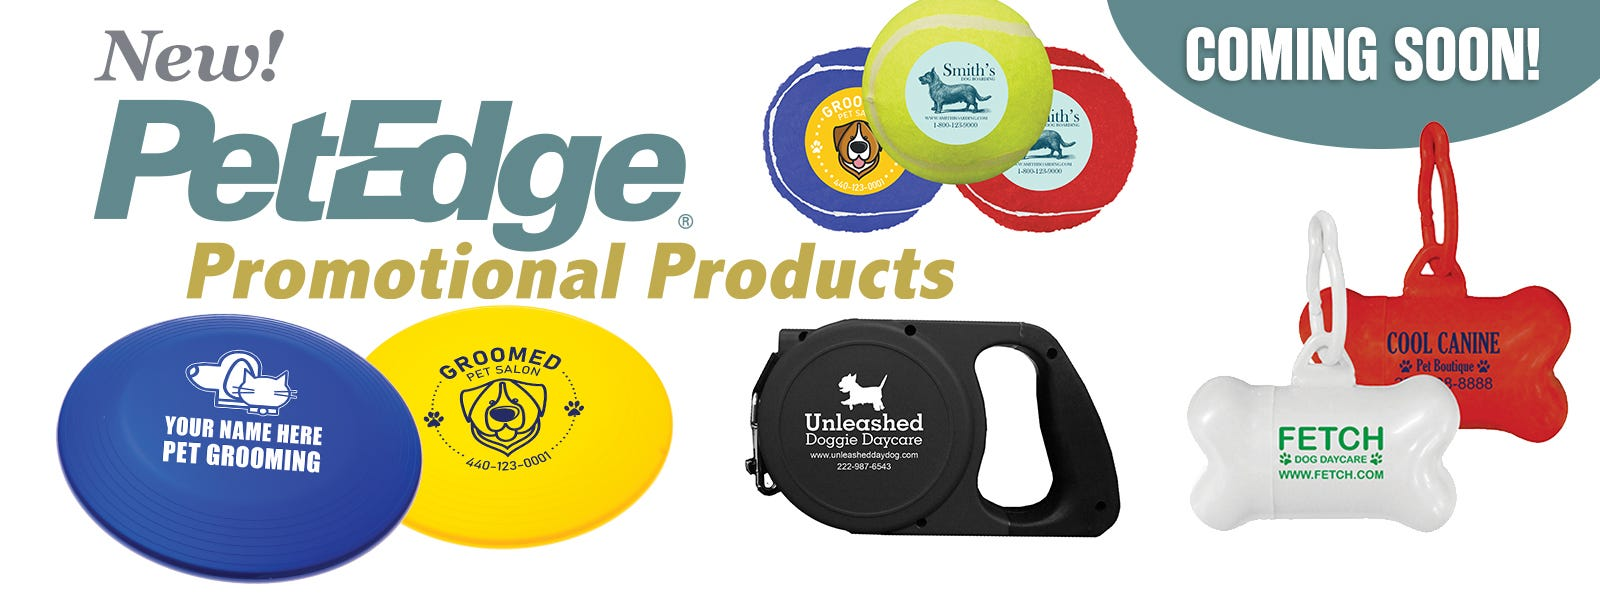 New! PetEdge Promotional Products coming soon!